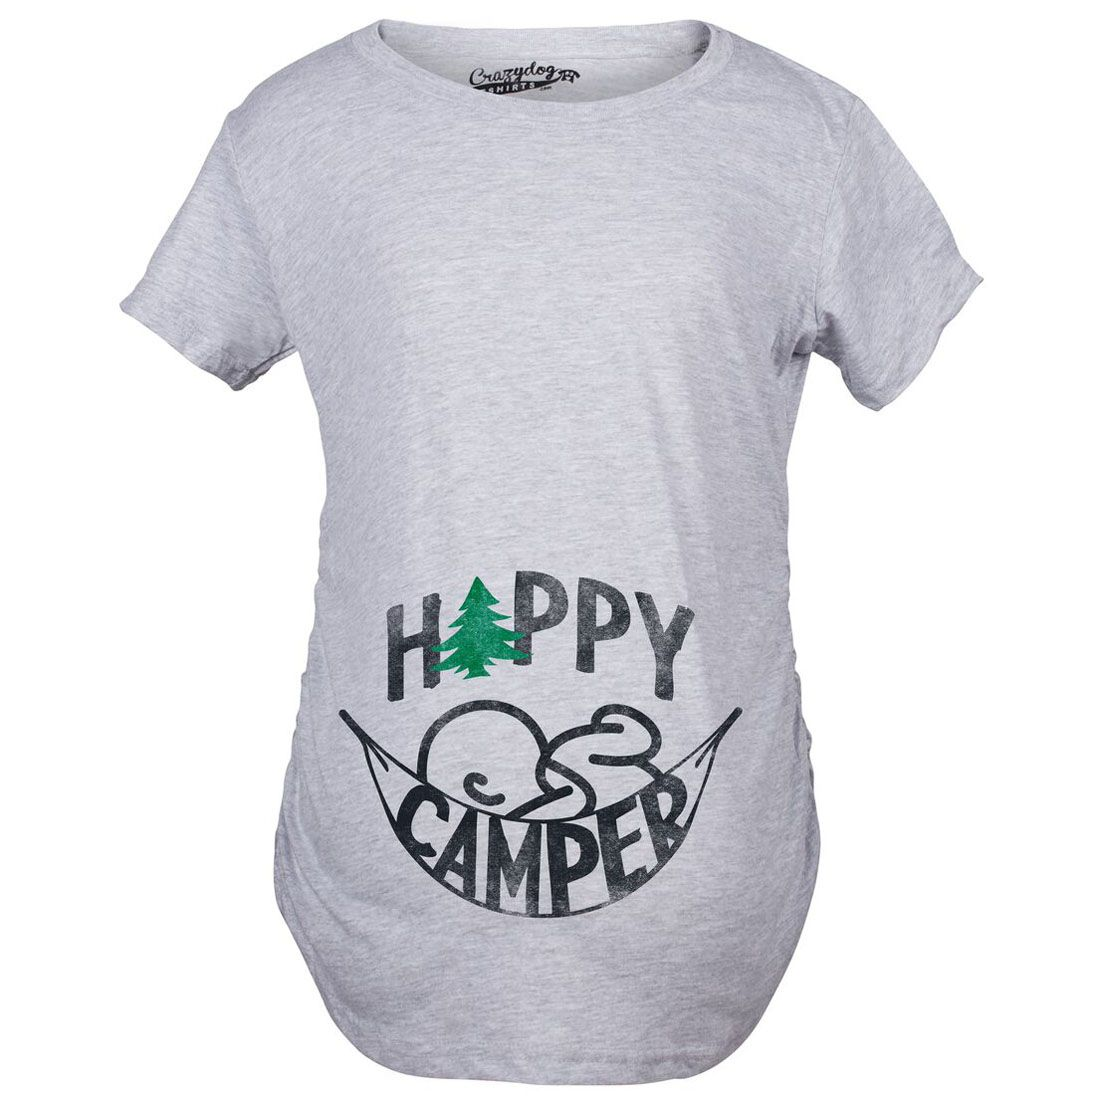 d01fc07047e8f Maternity Happy Camper Funny Camping Baby Bump Pregnancy Announcement T  shirt | CrazyDog Tshirts